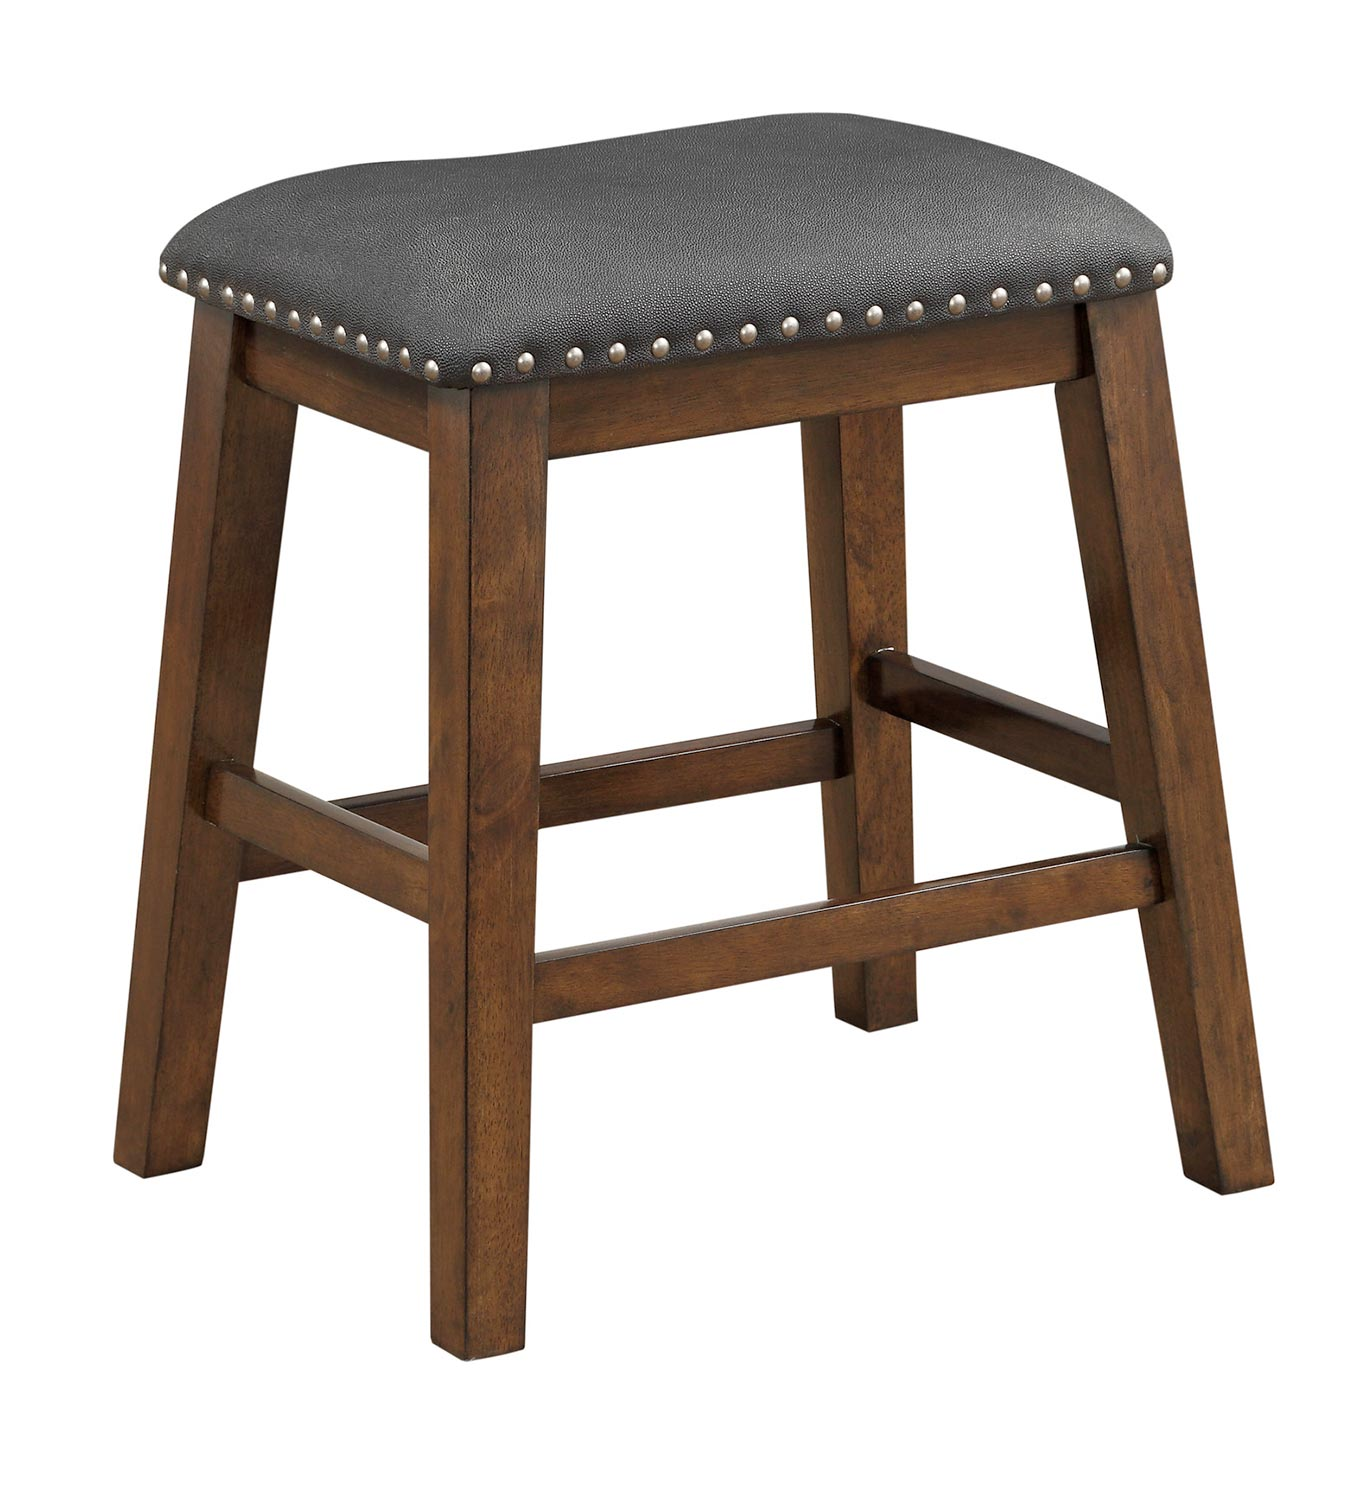 Homelegance Brindle Counter Height Stool - Brown